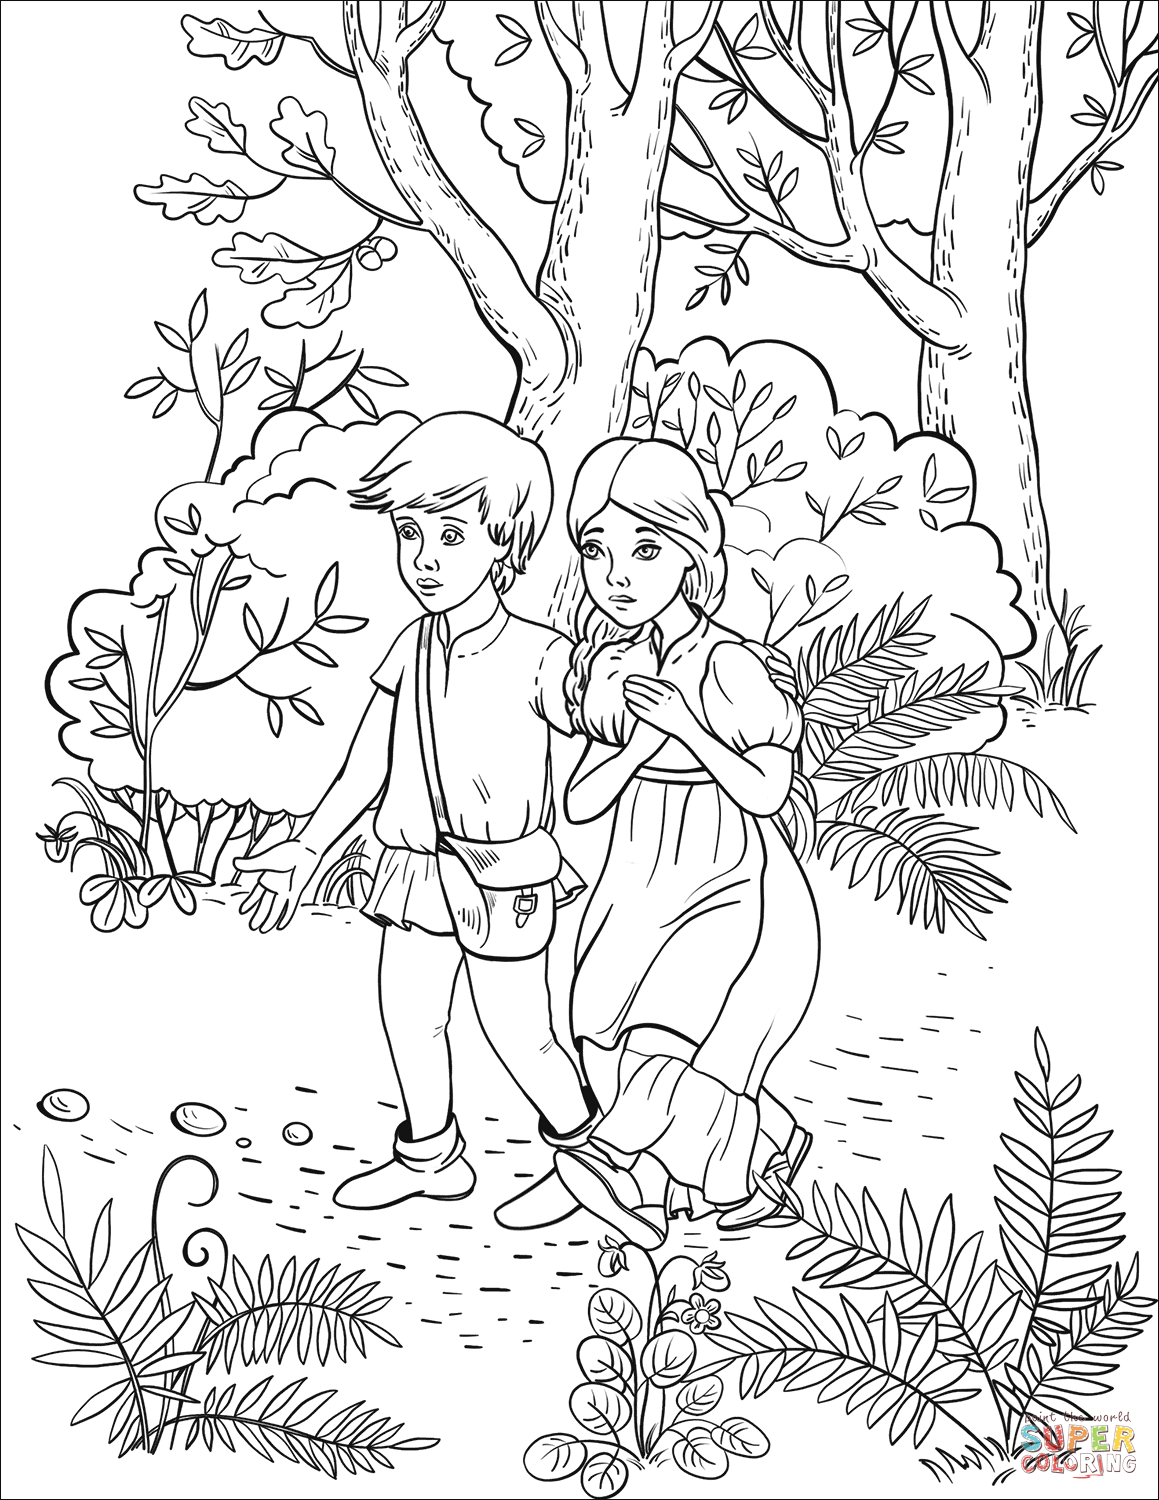 Hansel with his Sister Follow the Pebbles in the Forest